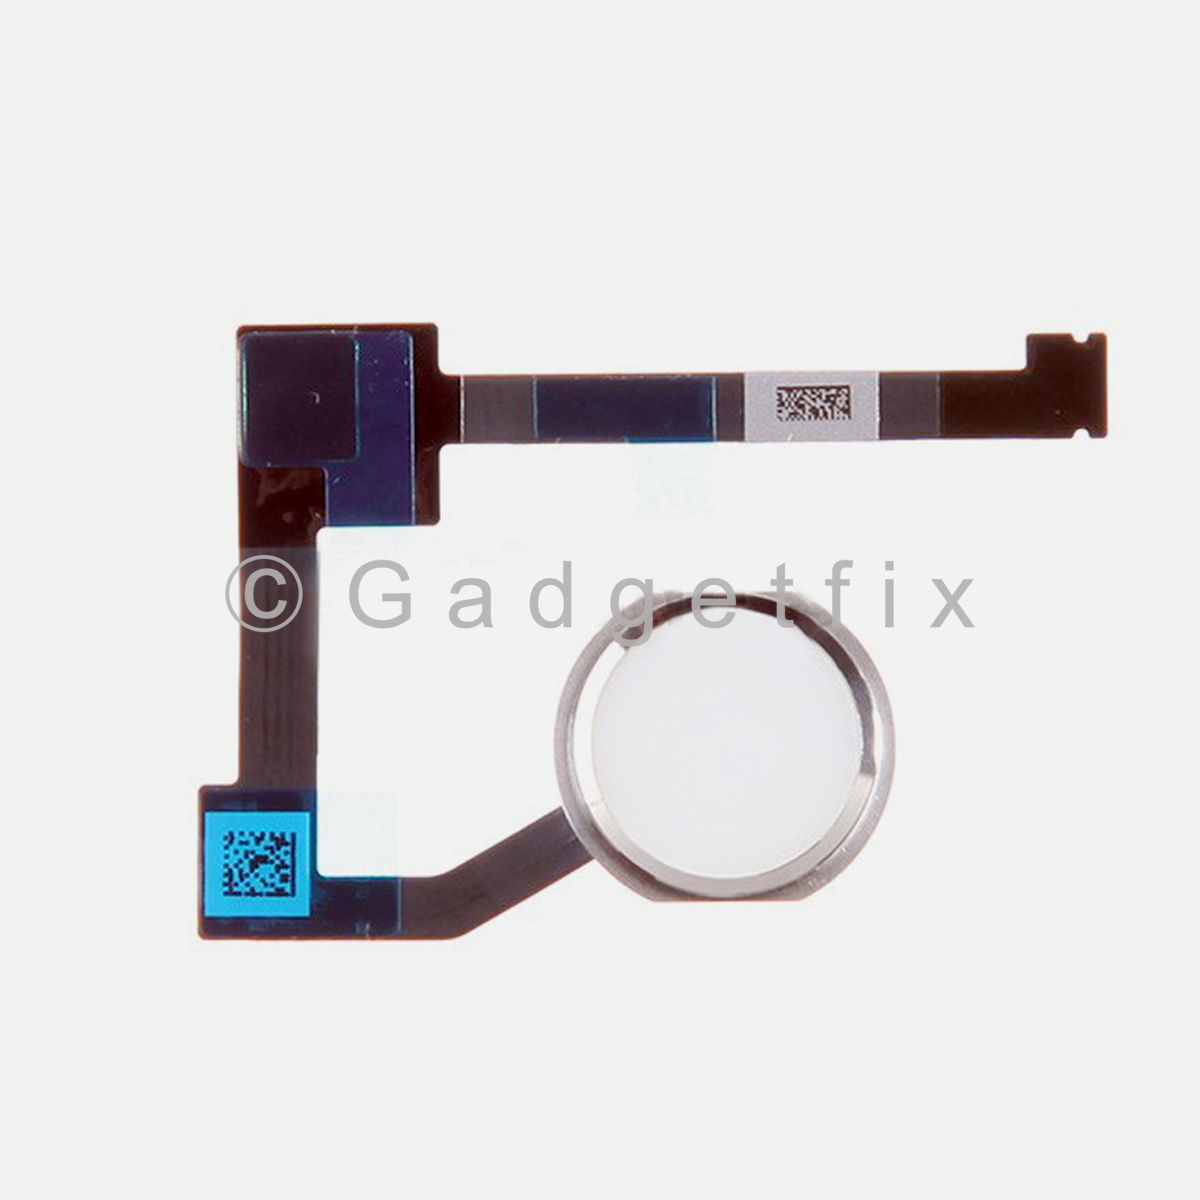 Silver Home Menu Button Flex Cable Replacement Part for iPad Air 2 A1566 A1567